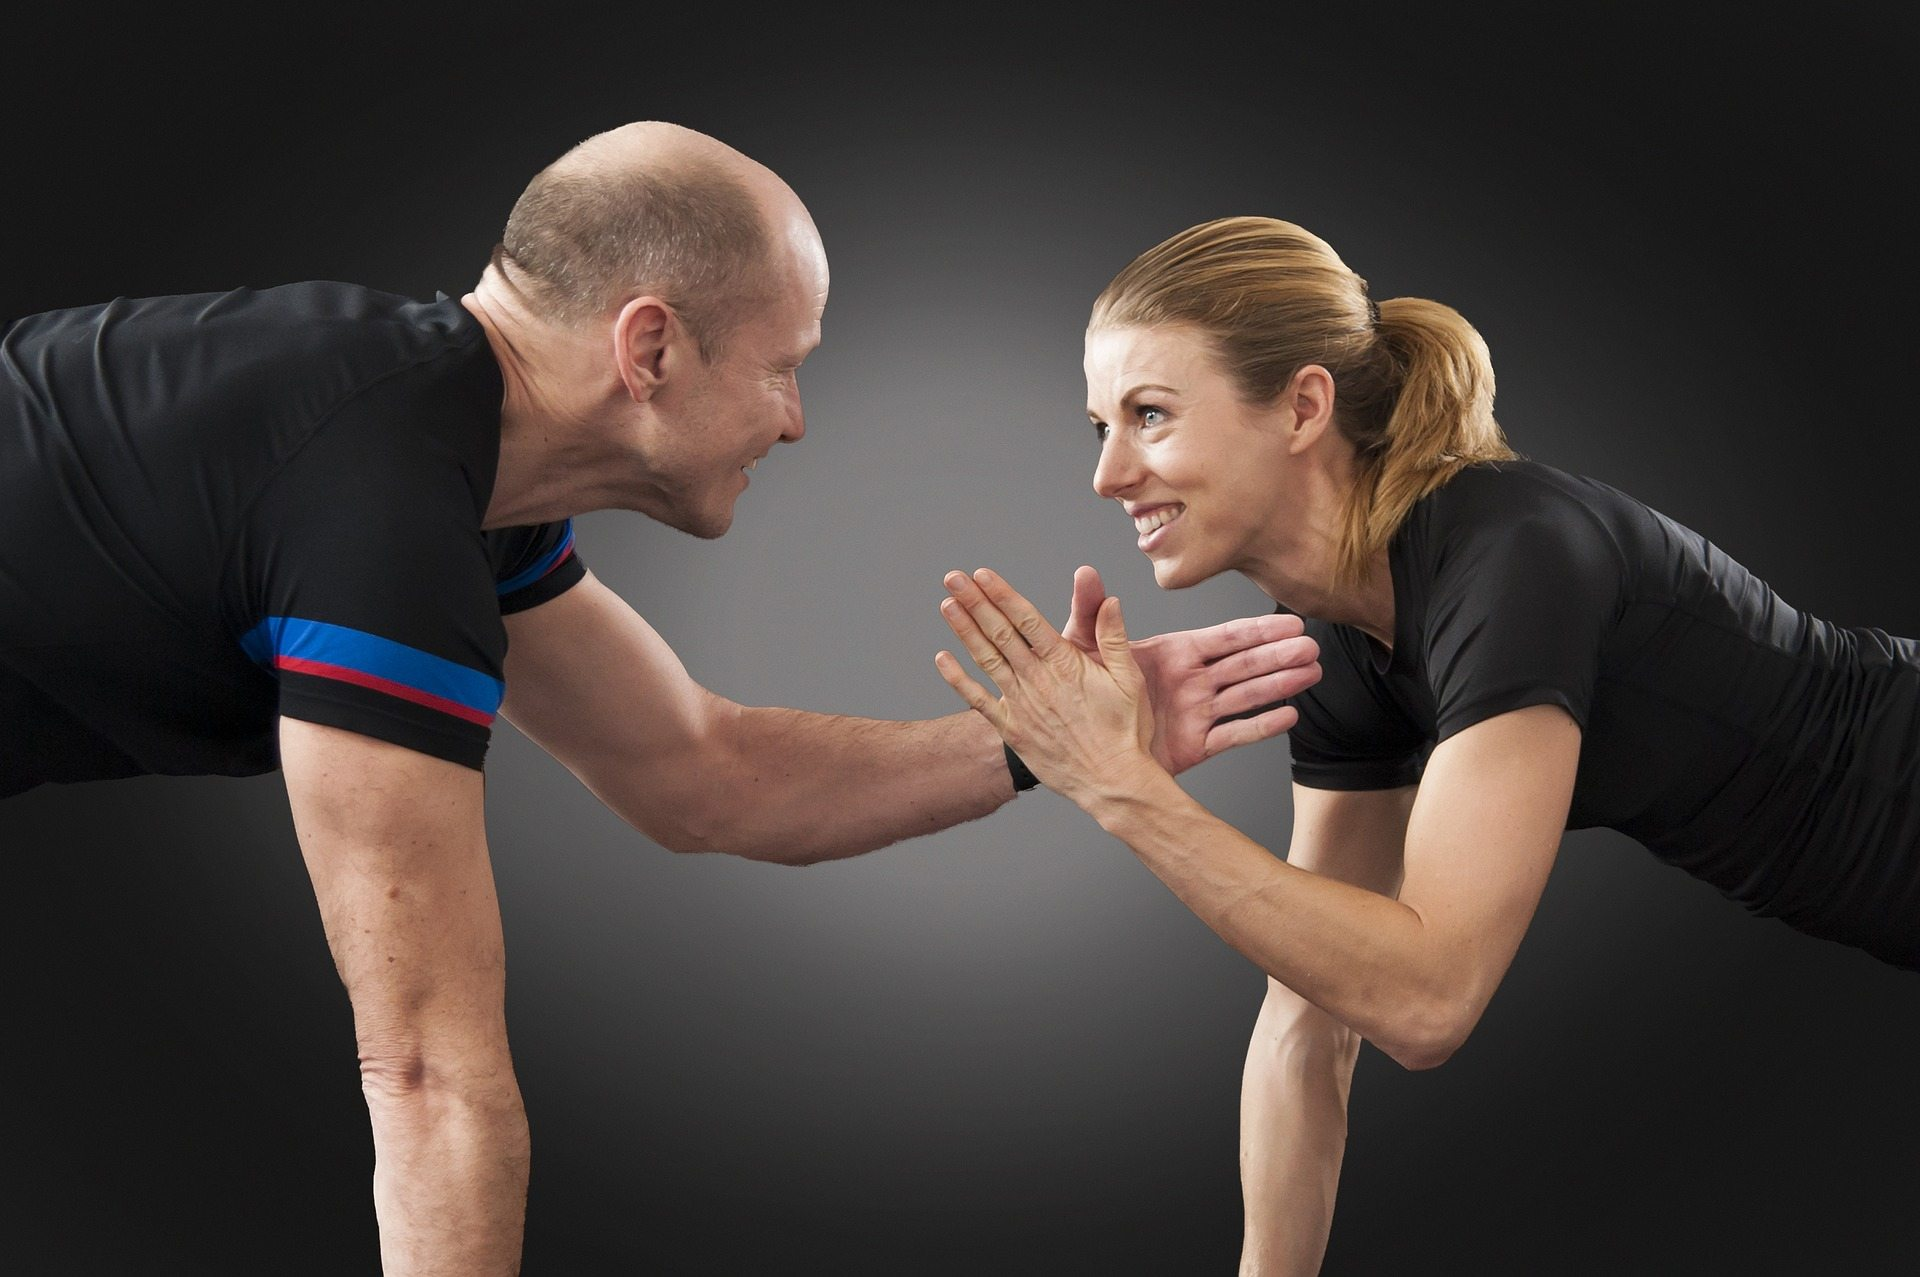 kettlebell 3293473 1920 - 4 Simple Tips For A Happier Healthier Workday